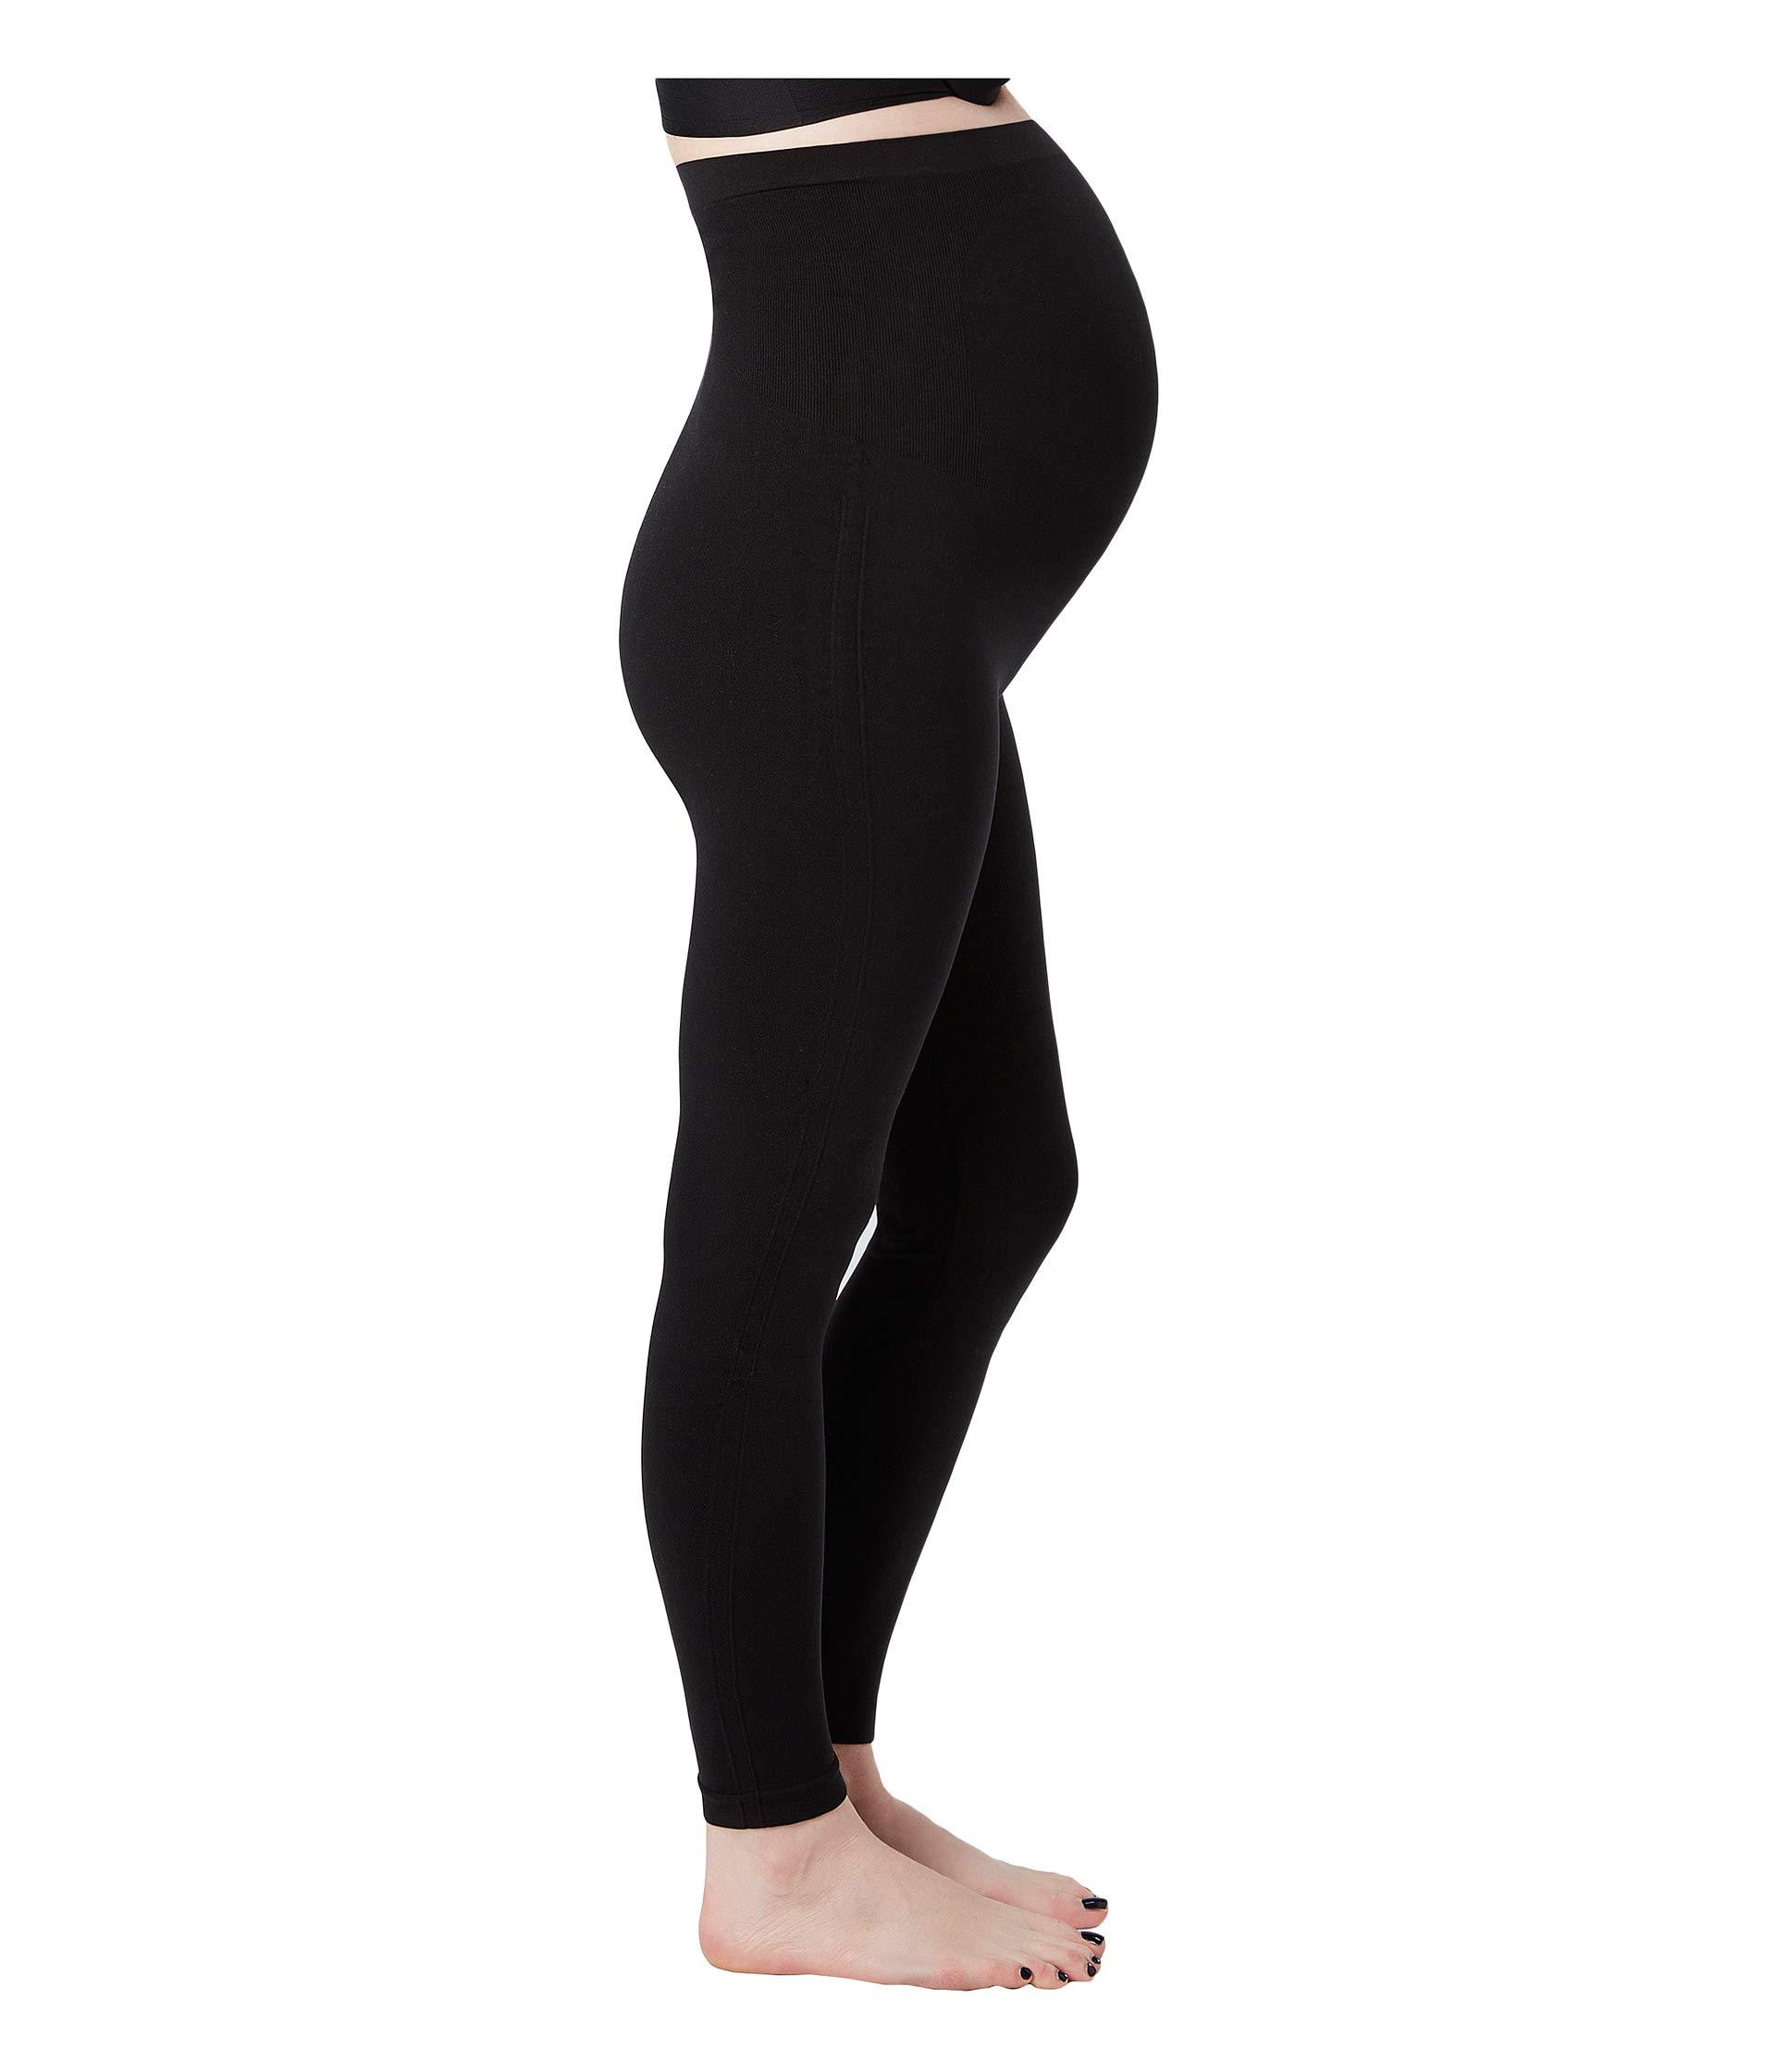 687e4961dd Lyst - Spanx Mama Look At Me Now Seamless Leggings (very Black) Women s  Casual Pants in Black